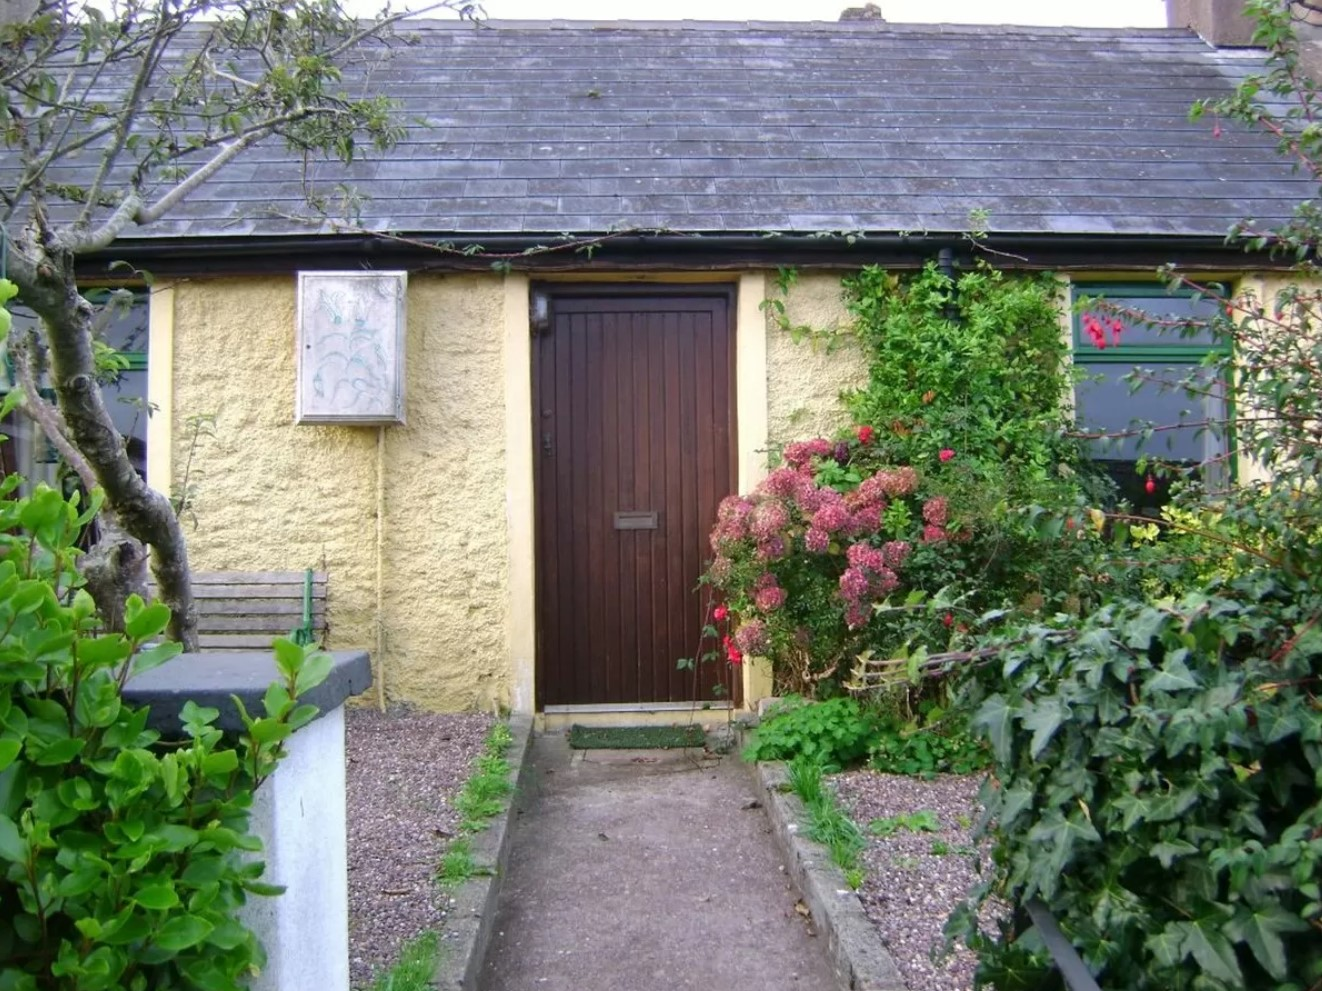 Elgo Cottage, Lower House, Middle Road, Crosshaven, Co. Cork